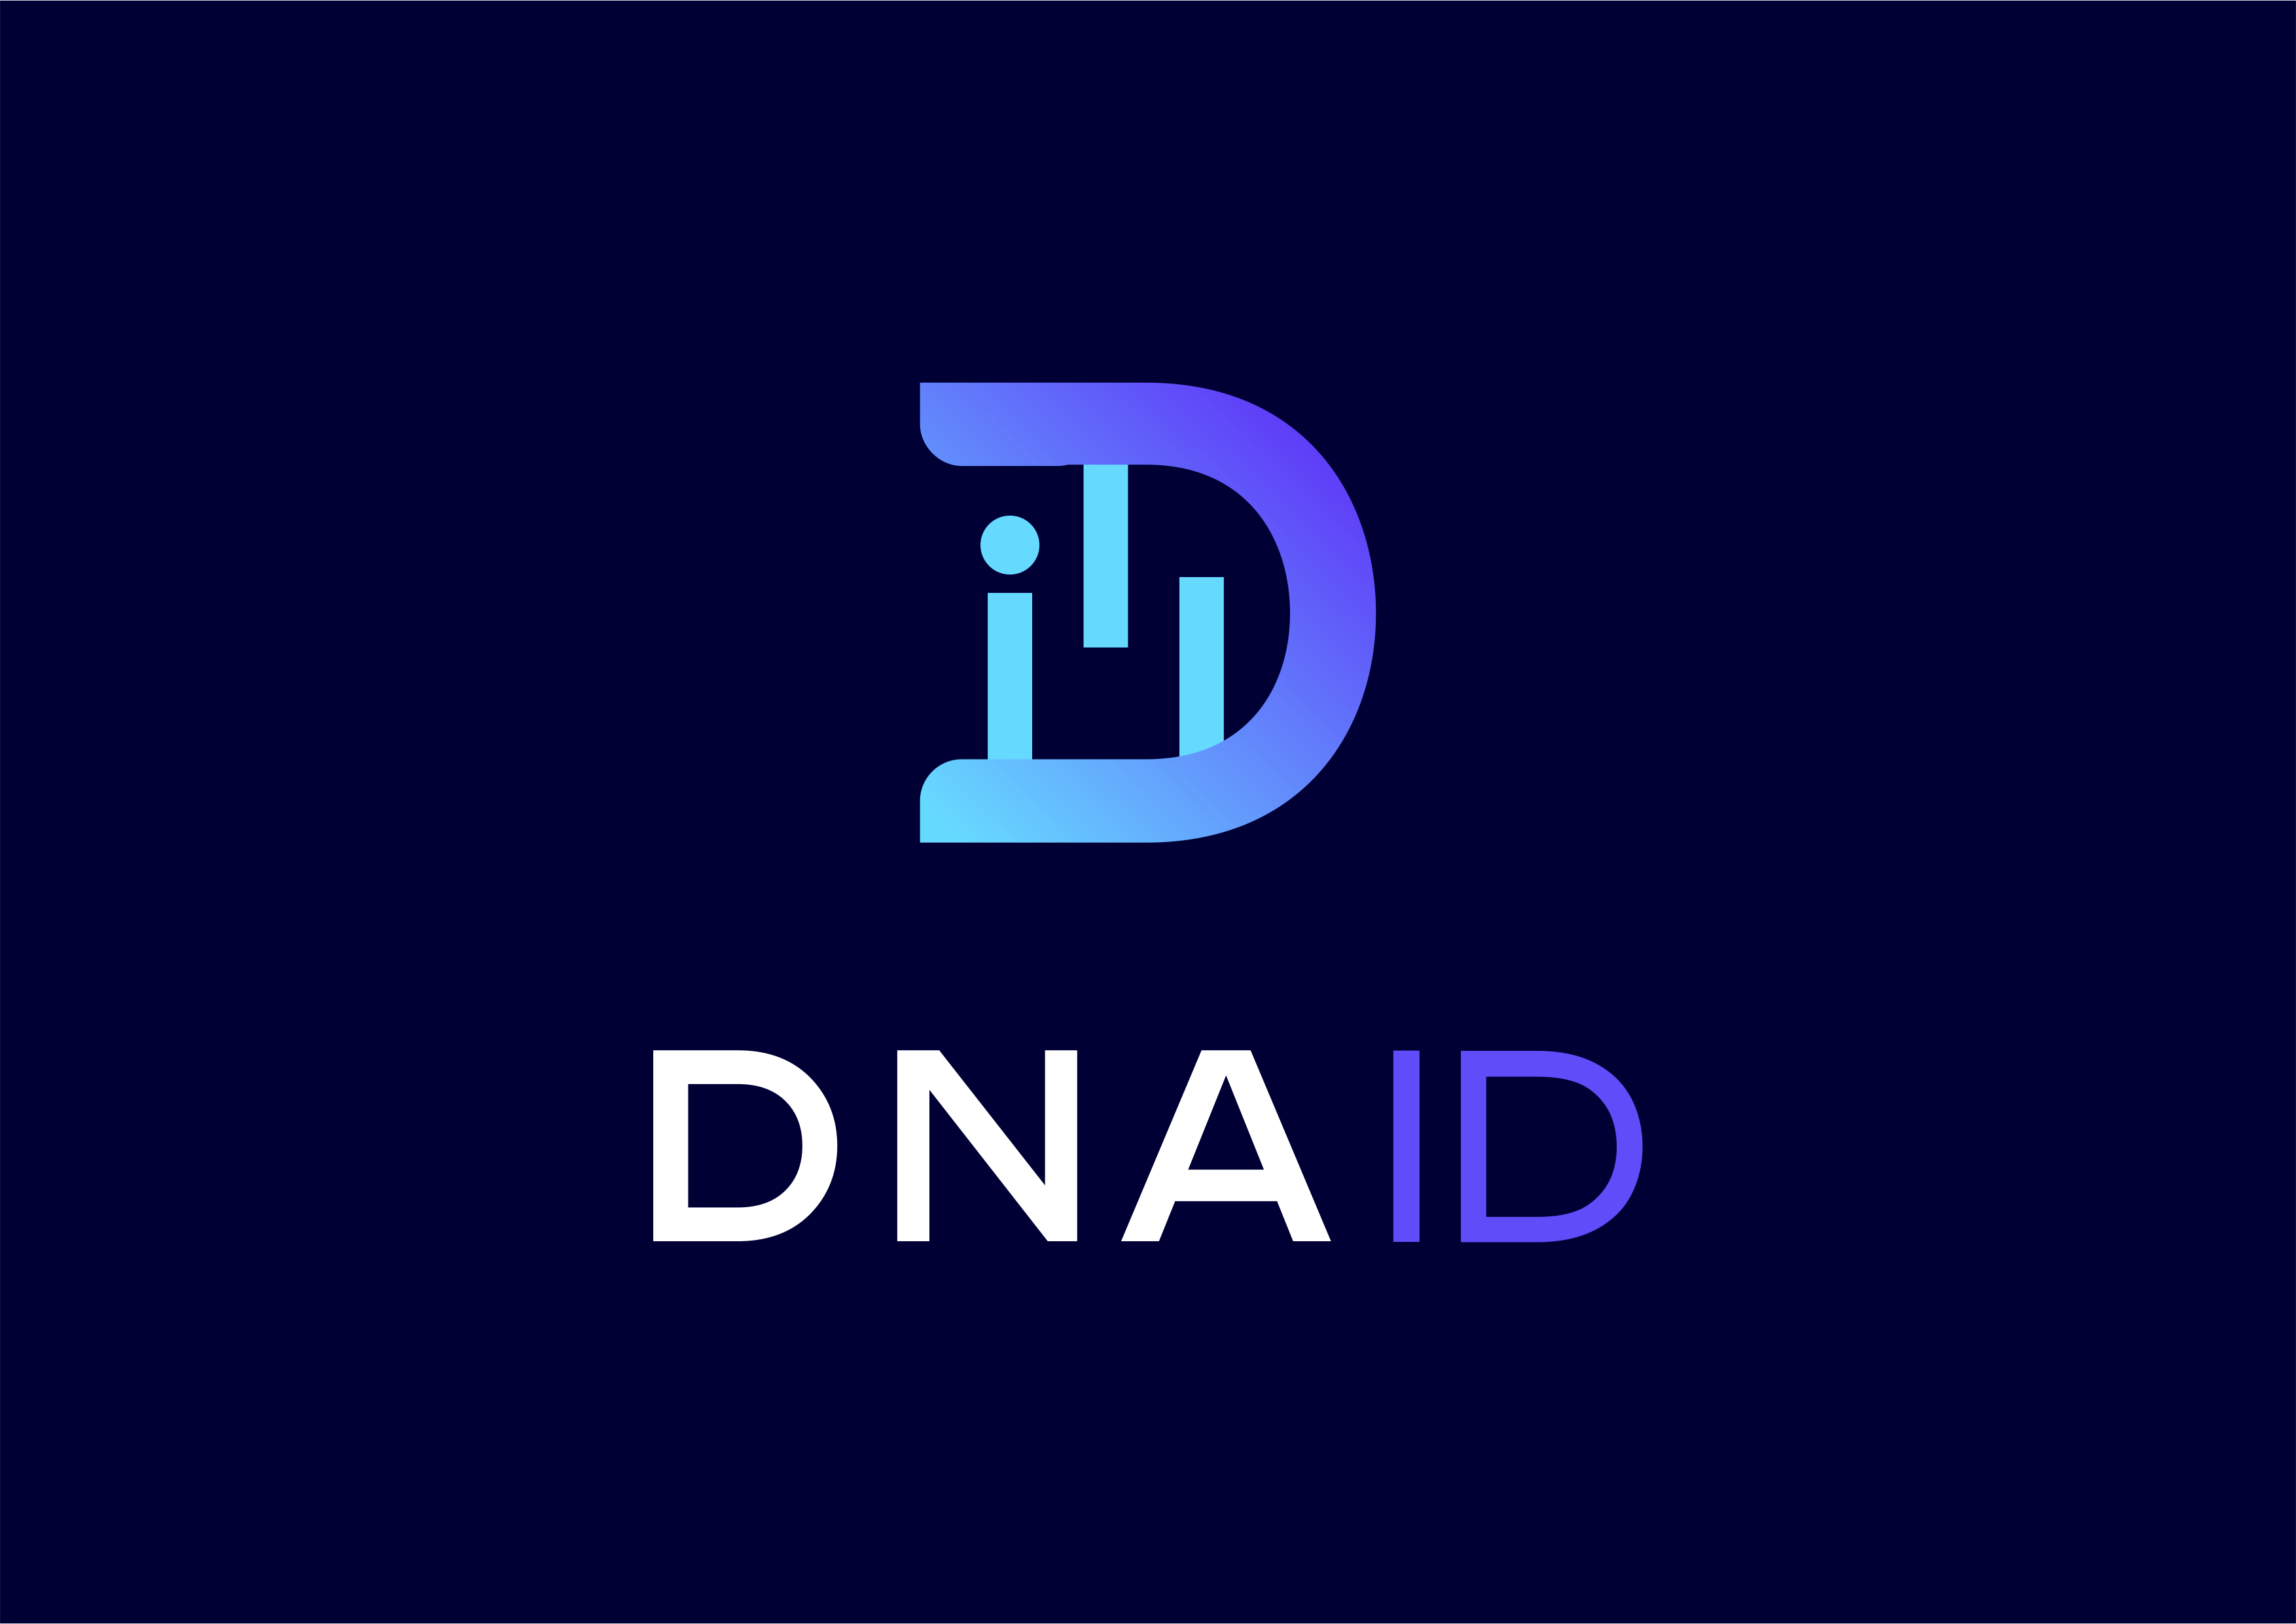 DNA ID